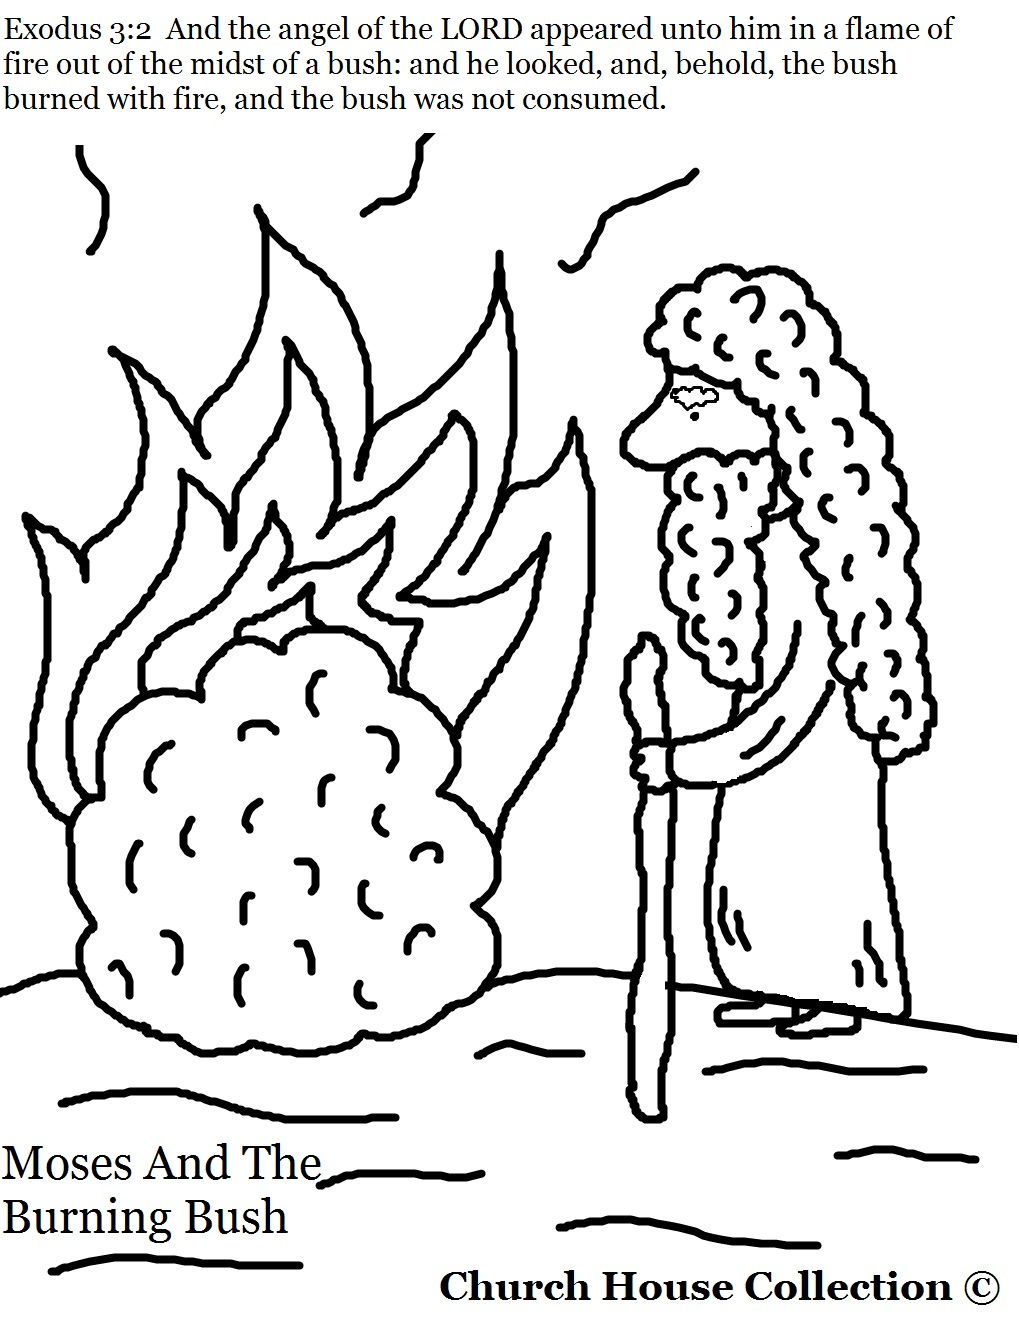 Moses And The Burning Bush Coloring Page Exodus 32